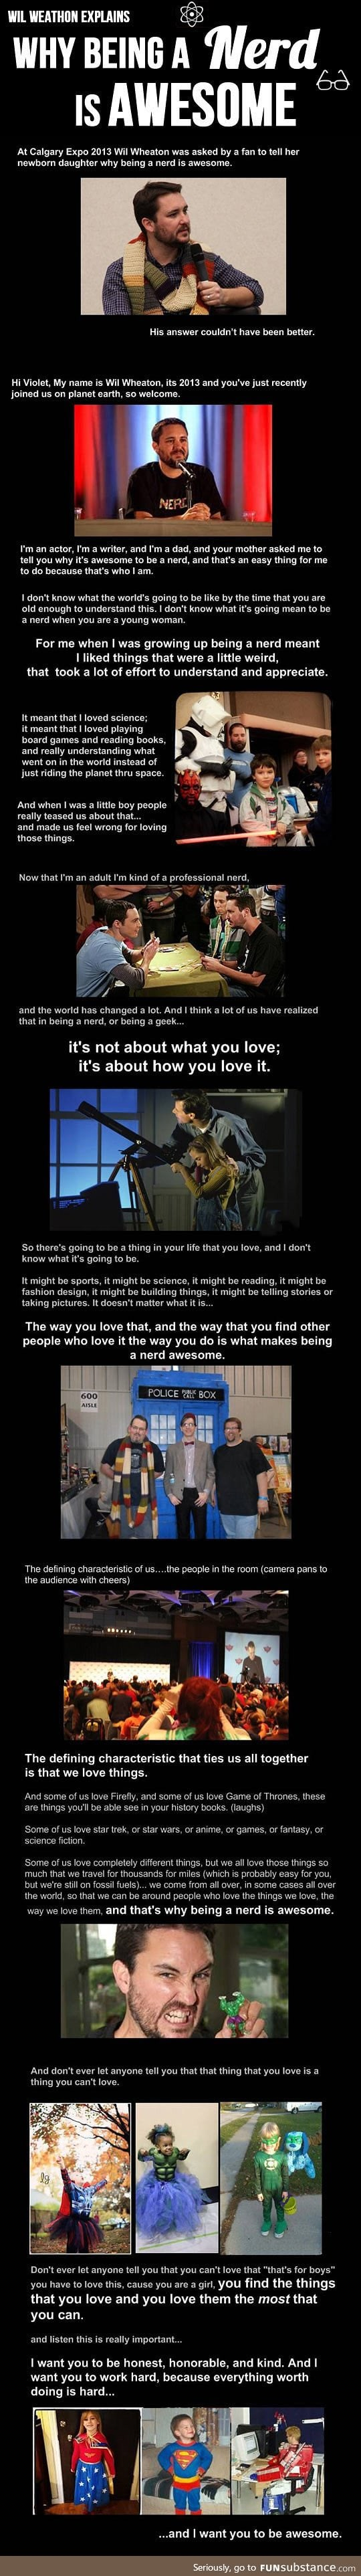 Why being a nerd is awesome